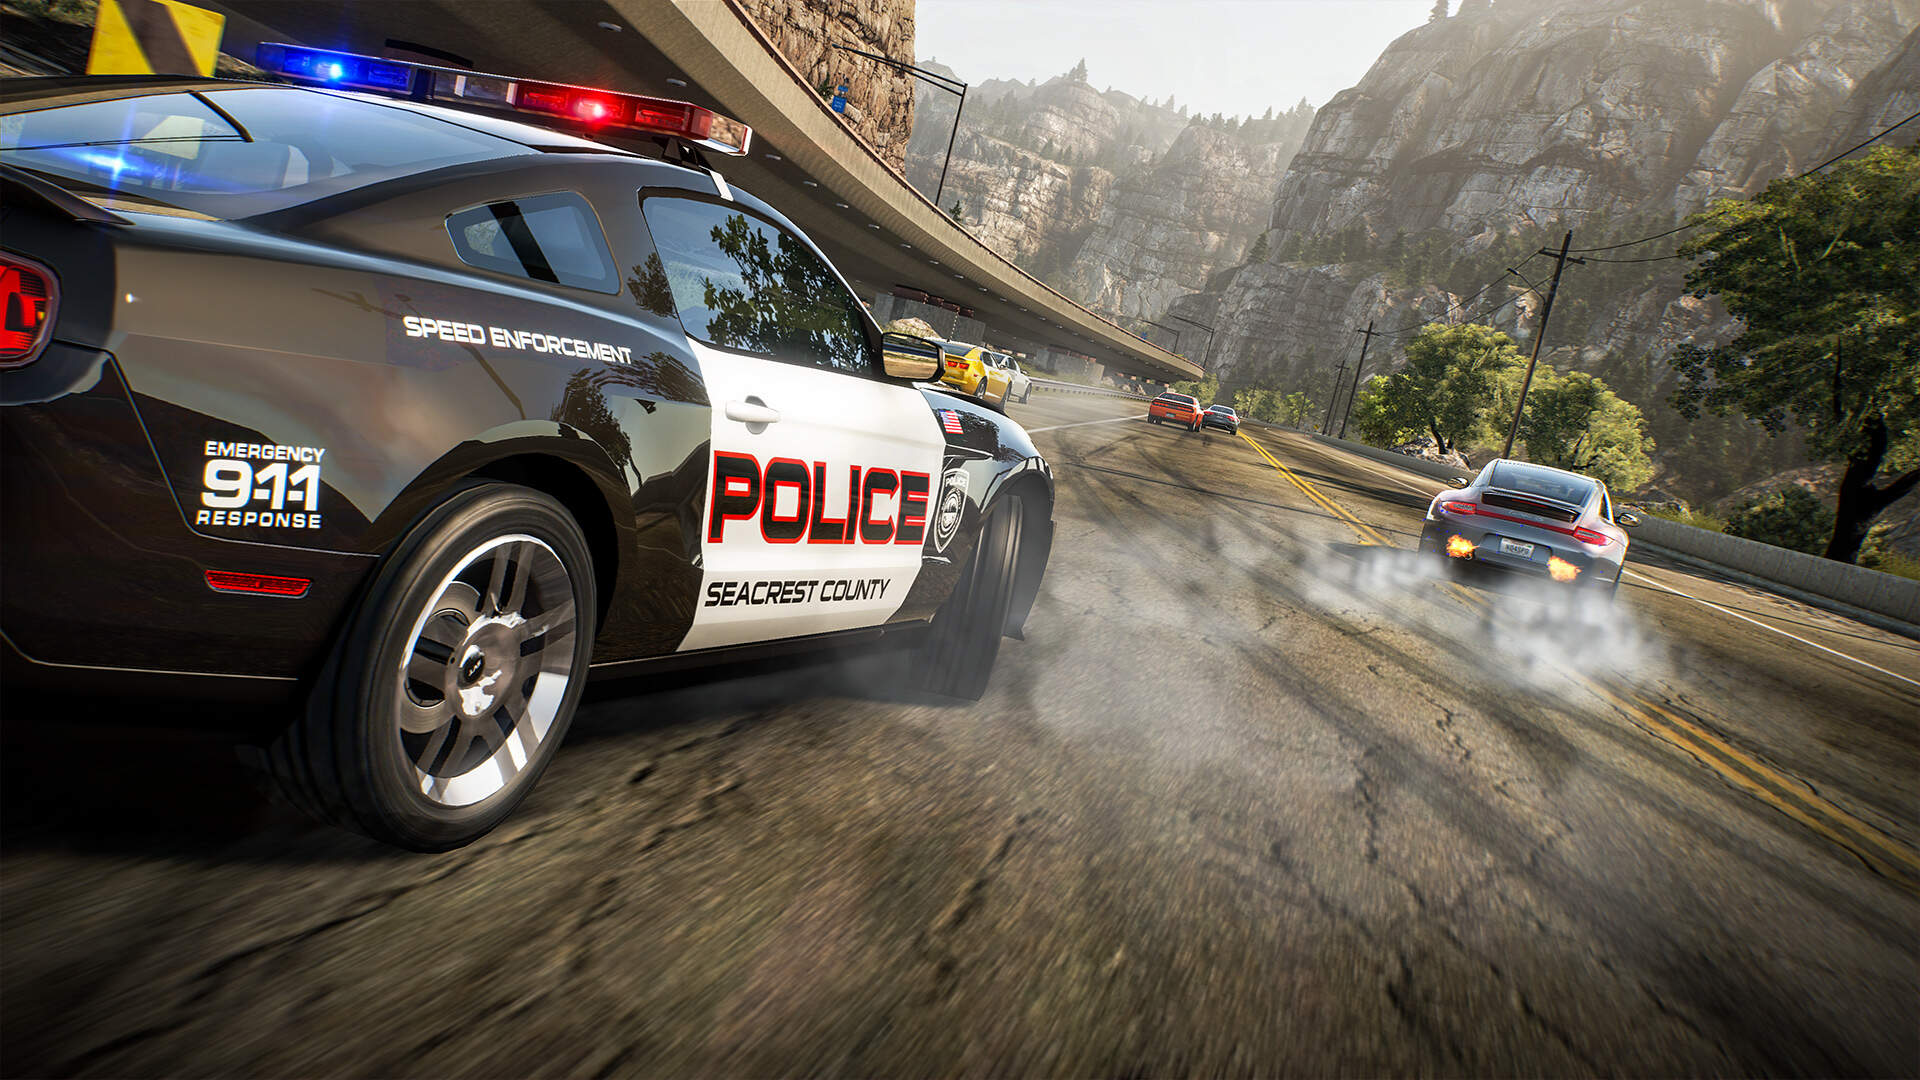 Need For Speed: Hot Pursuit Remastered Is a Real Trip to 2010, Mostly in a Good Way